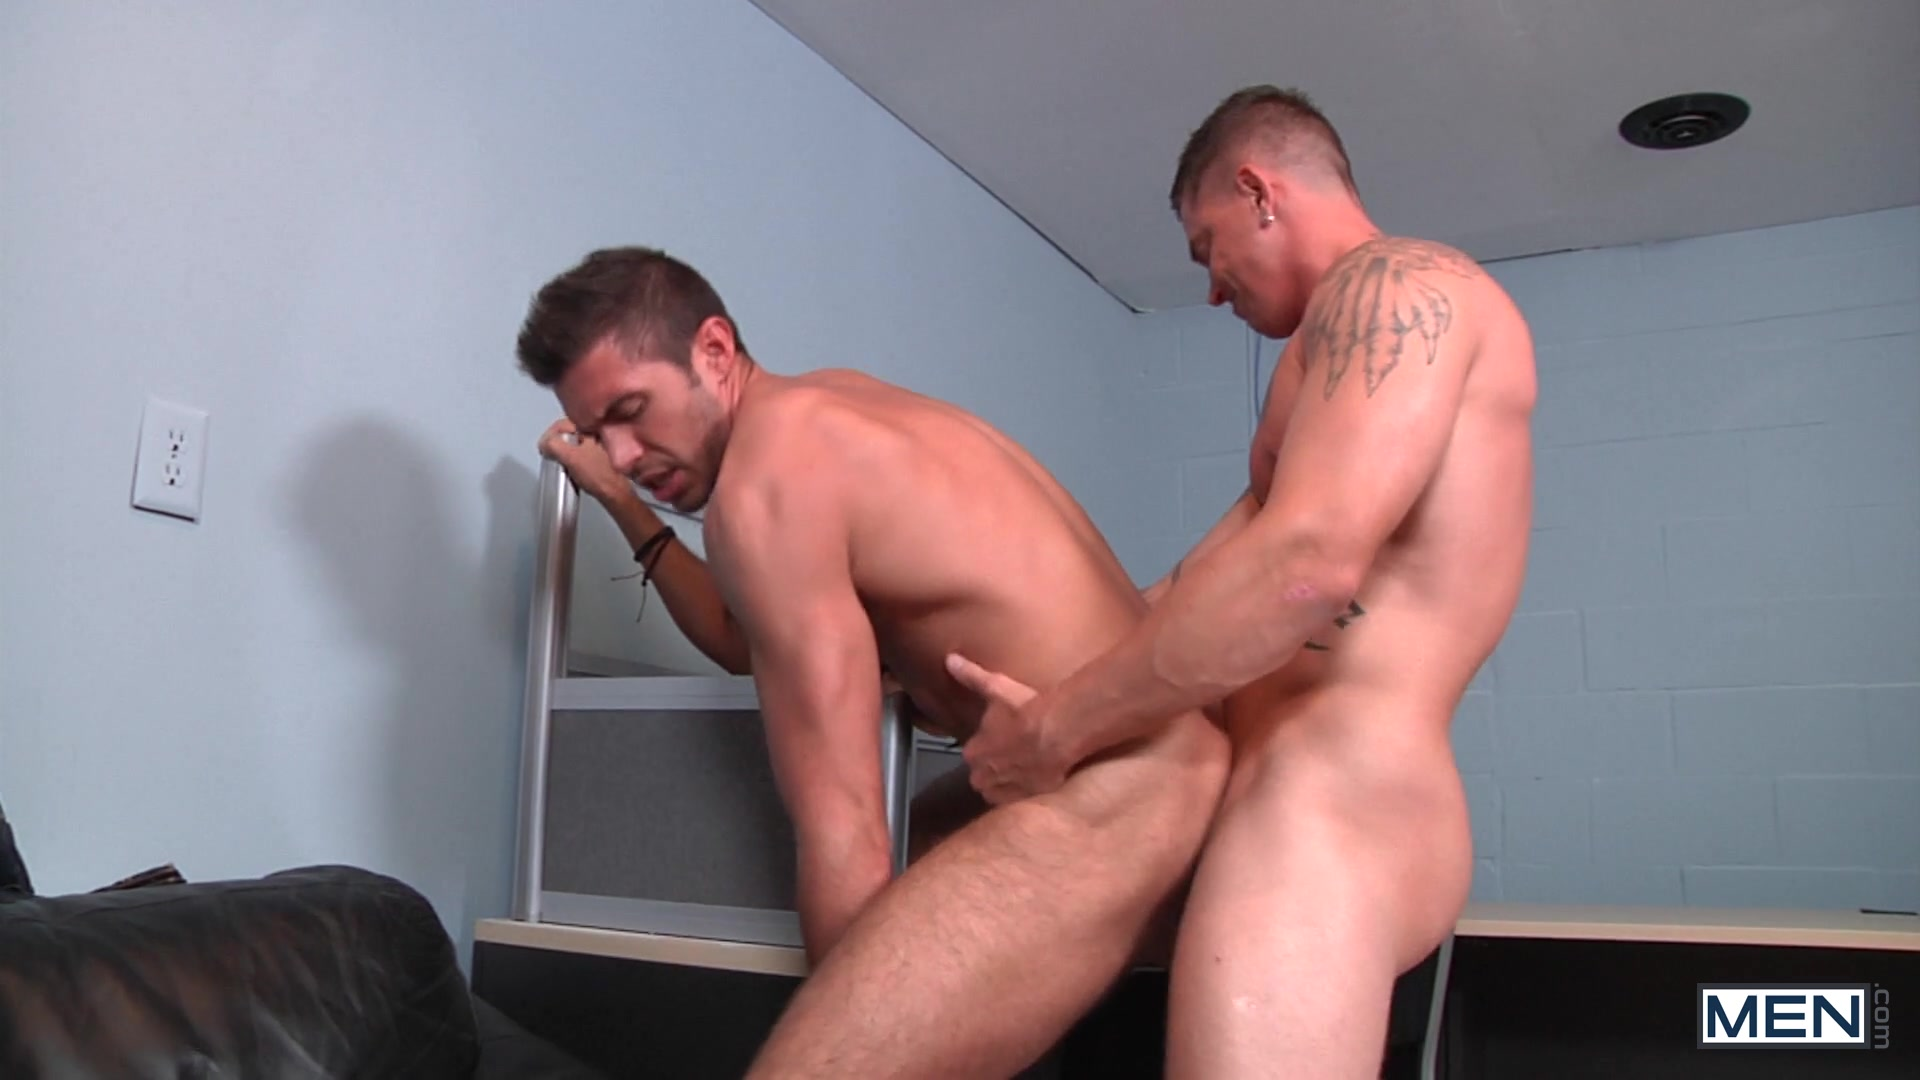 Watch The Next Bottom Part3 – Dmh – Sam Northman And Sebastian Young (MEN.COM) Gay Porn Tube Videos Gifs And Free XXX HD Sex Movies Photos Online